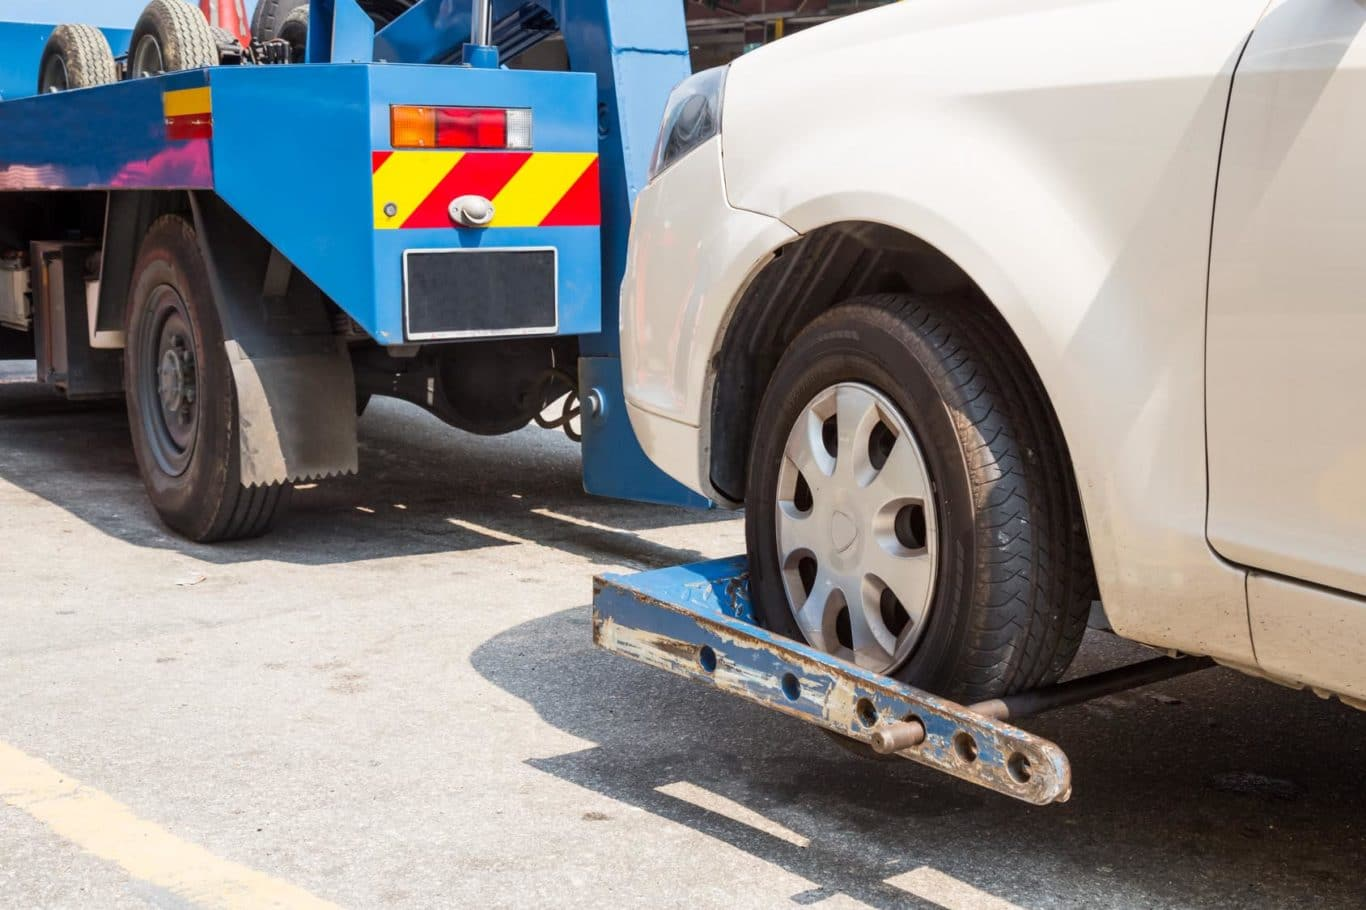 Ratoath expert Car Recovery services